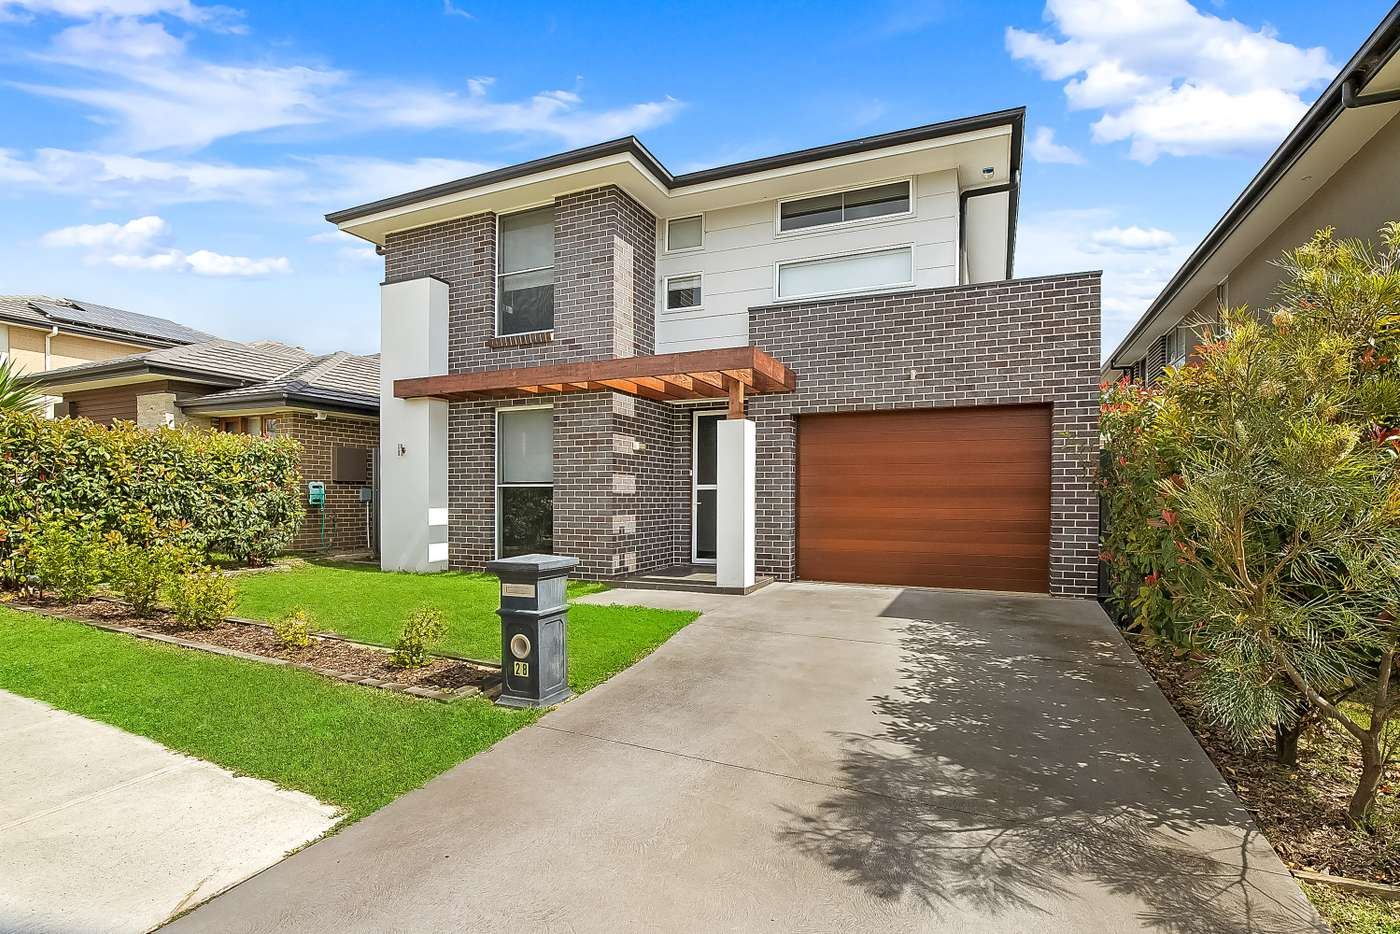 Main view of Homely house listing, 28 Rumery Street, Riverstone NSW 2765